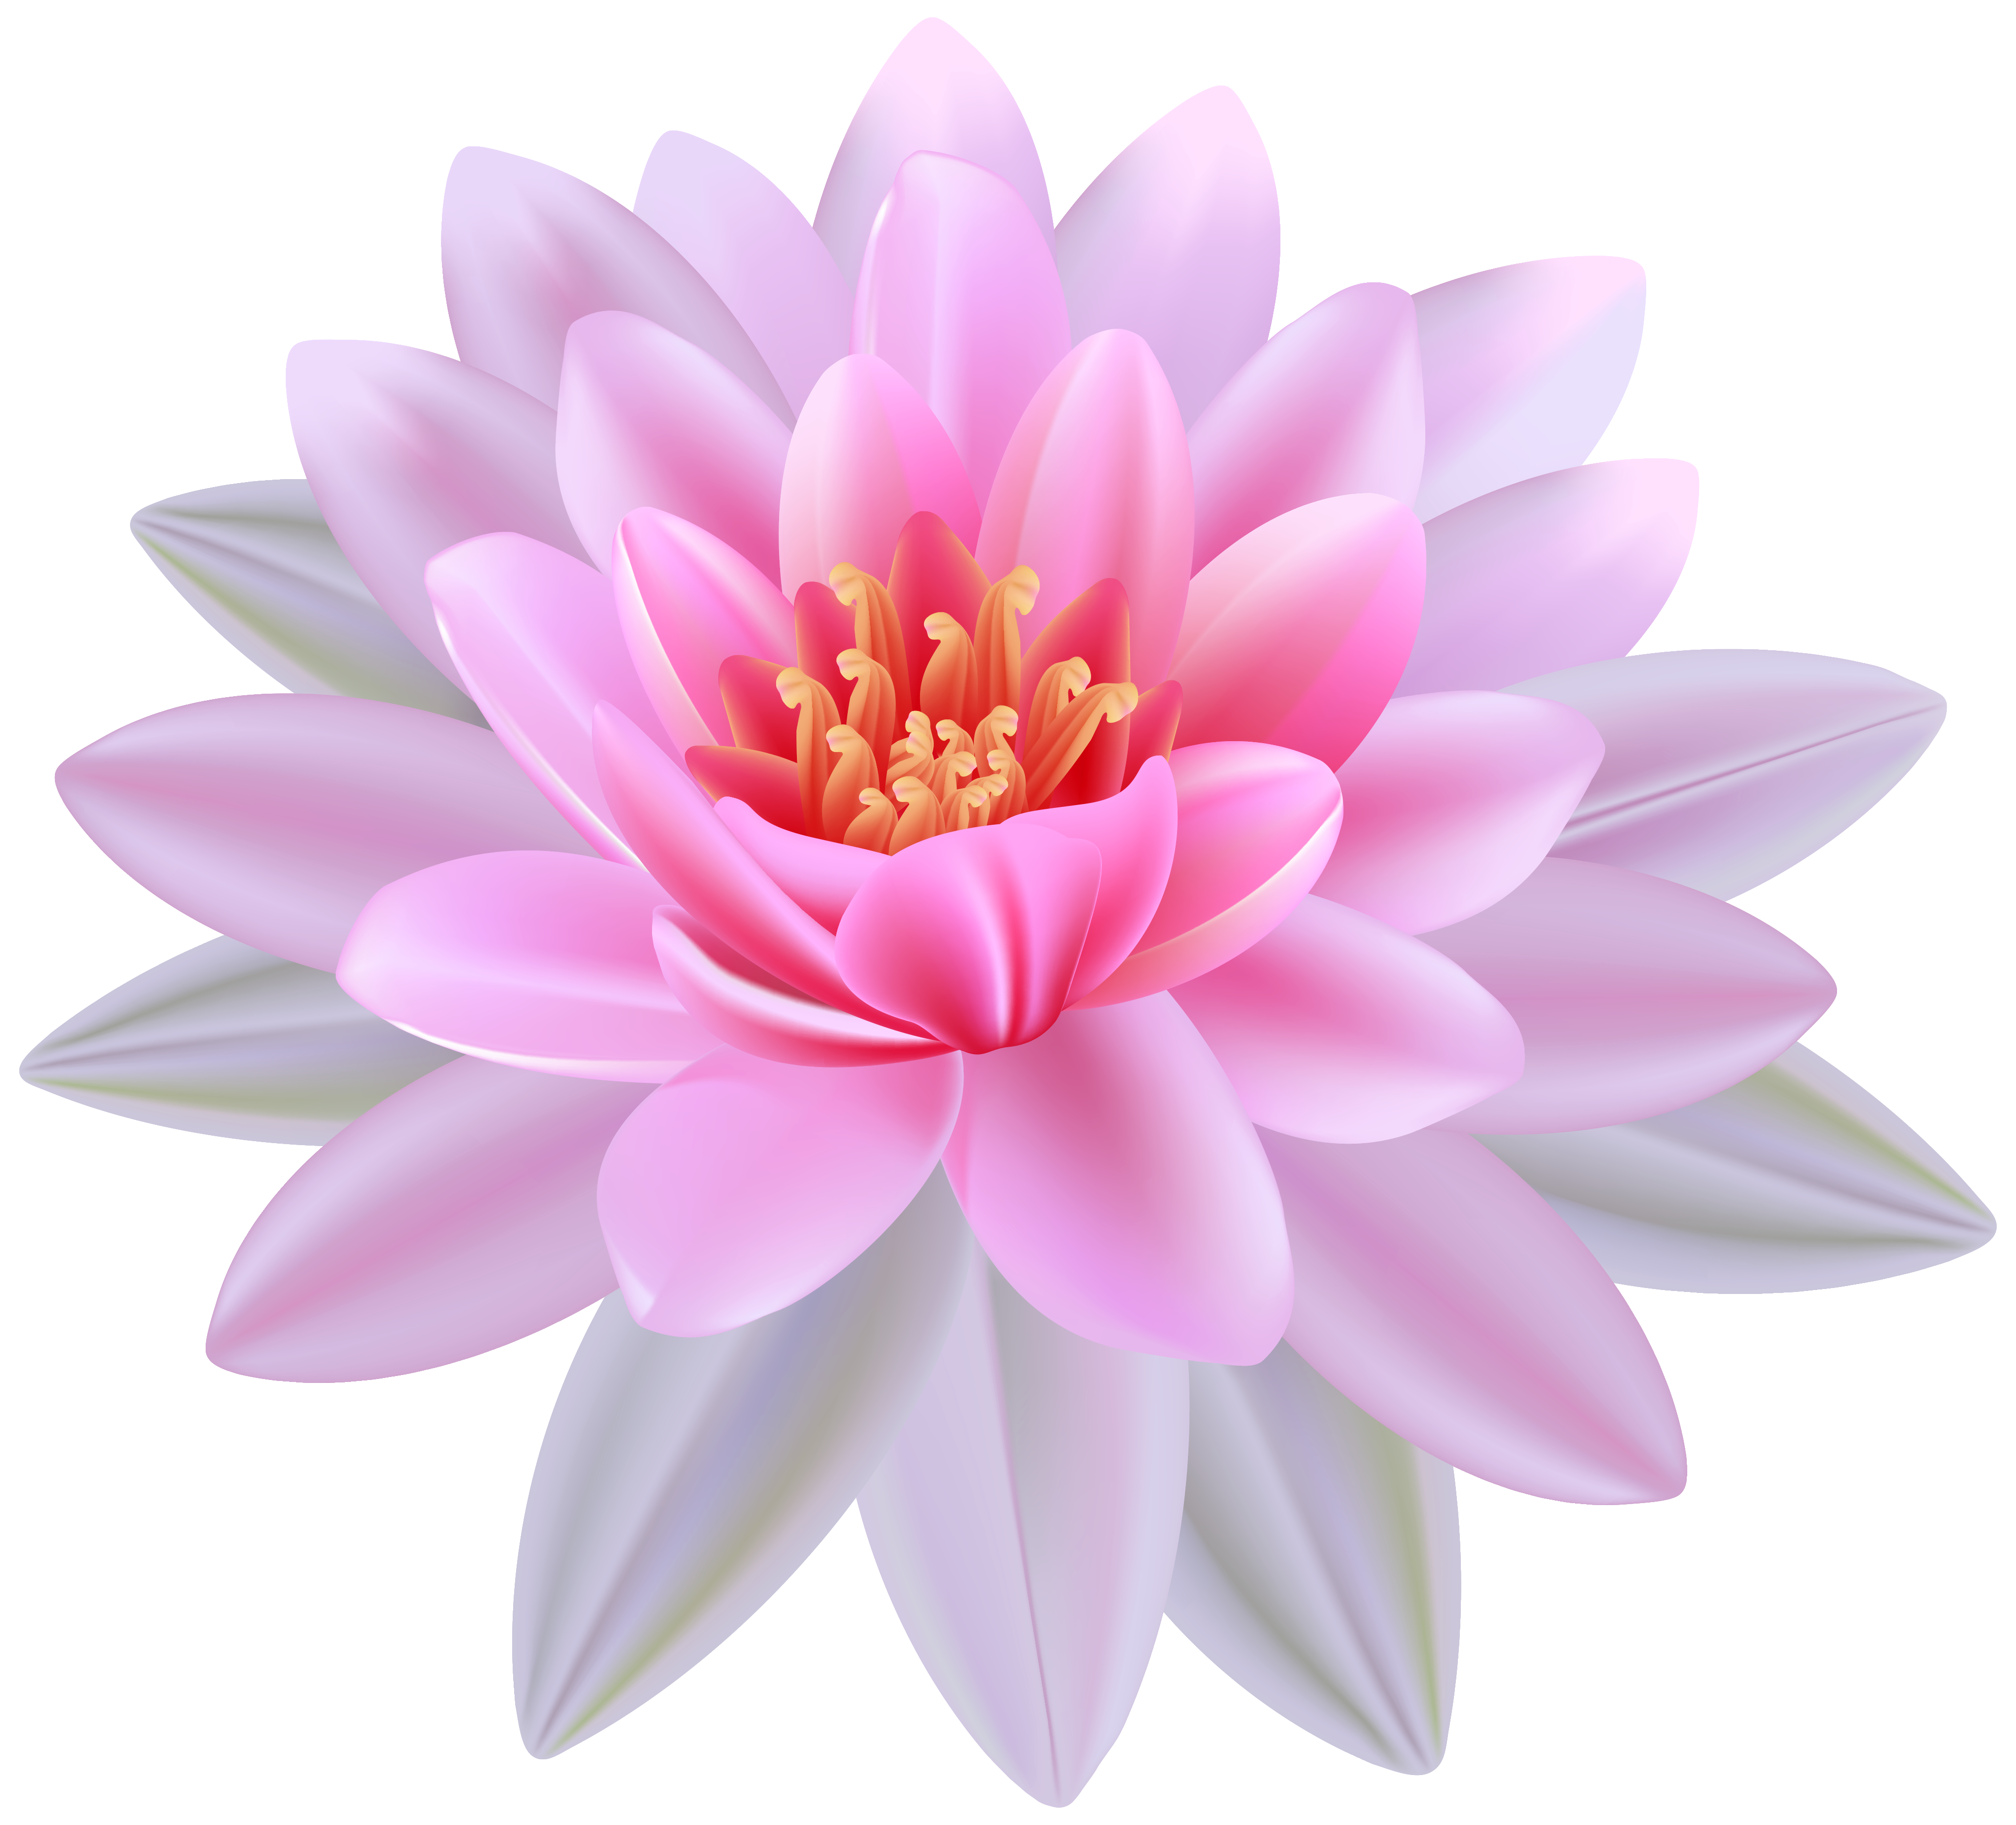 Water Lily clipart #1, Download drawings